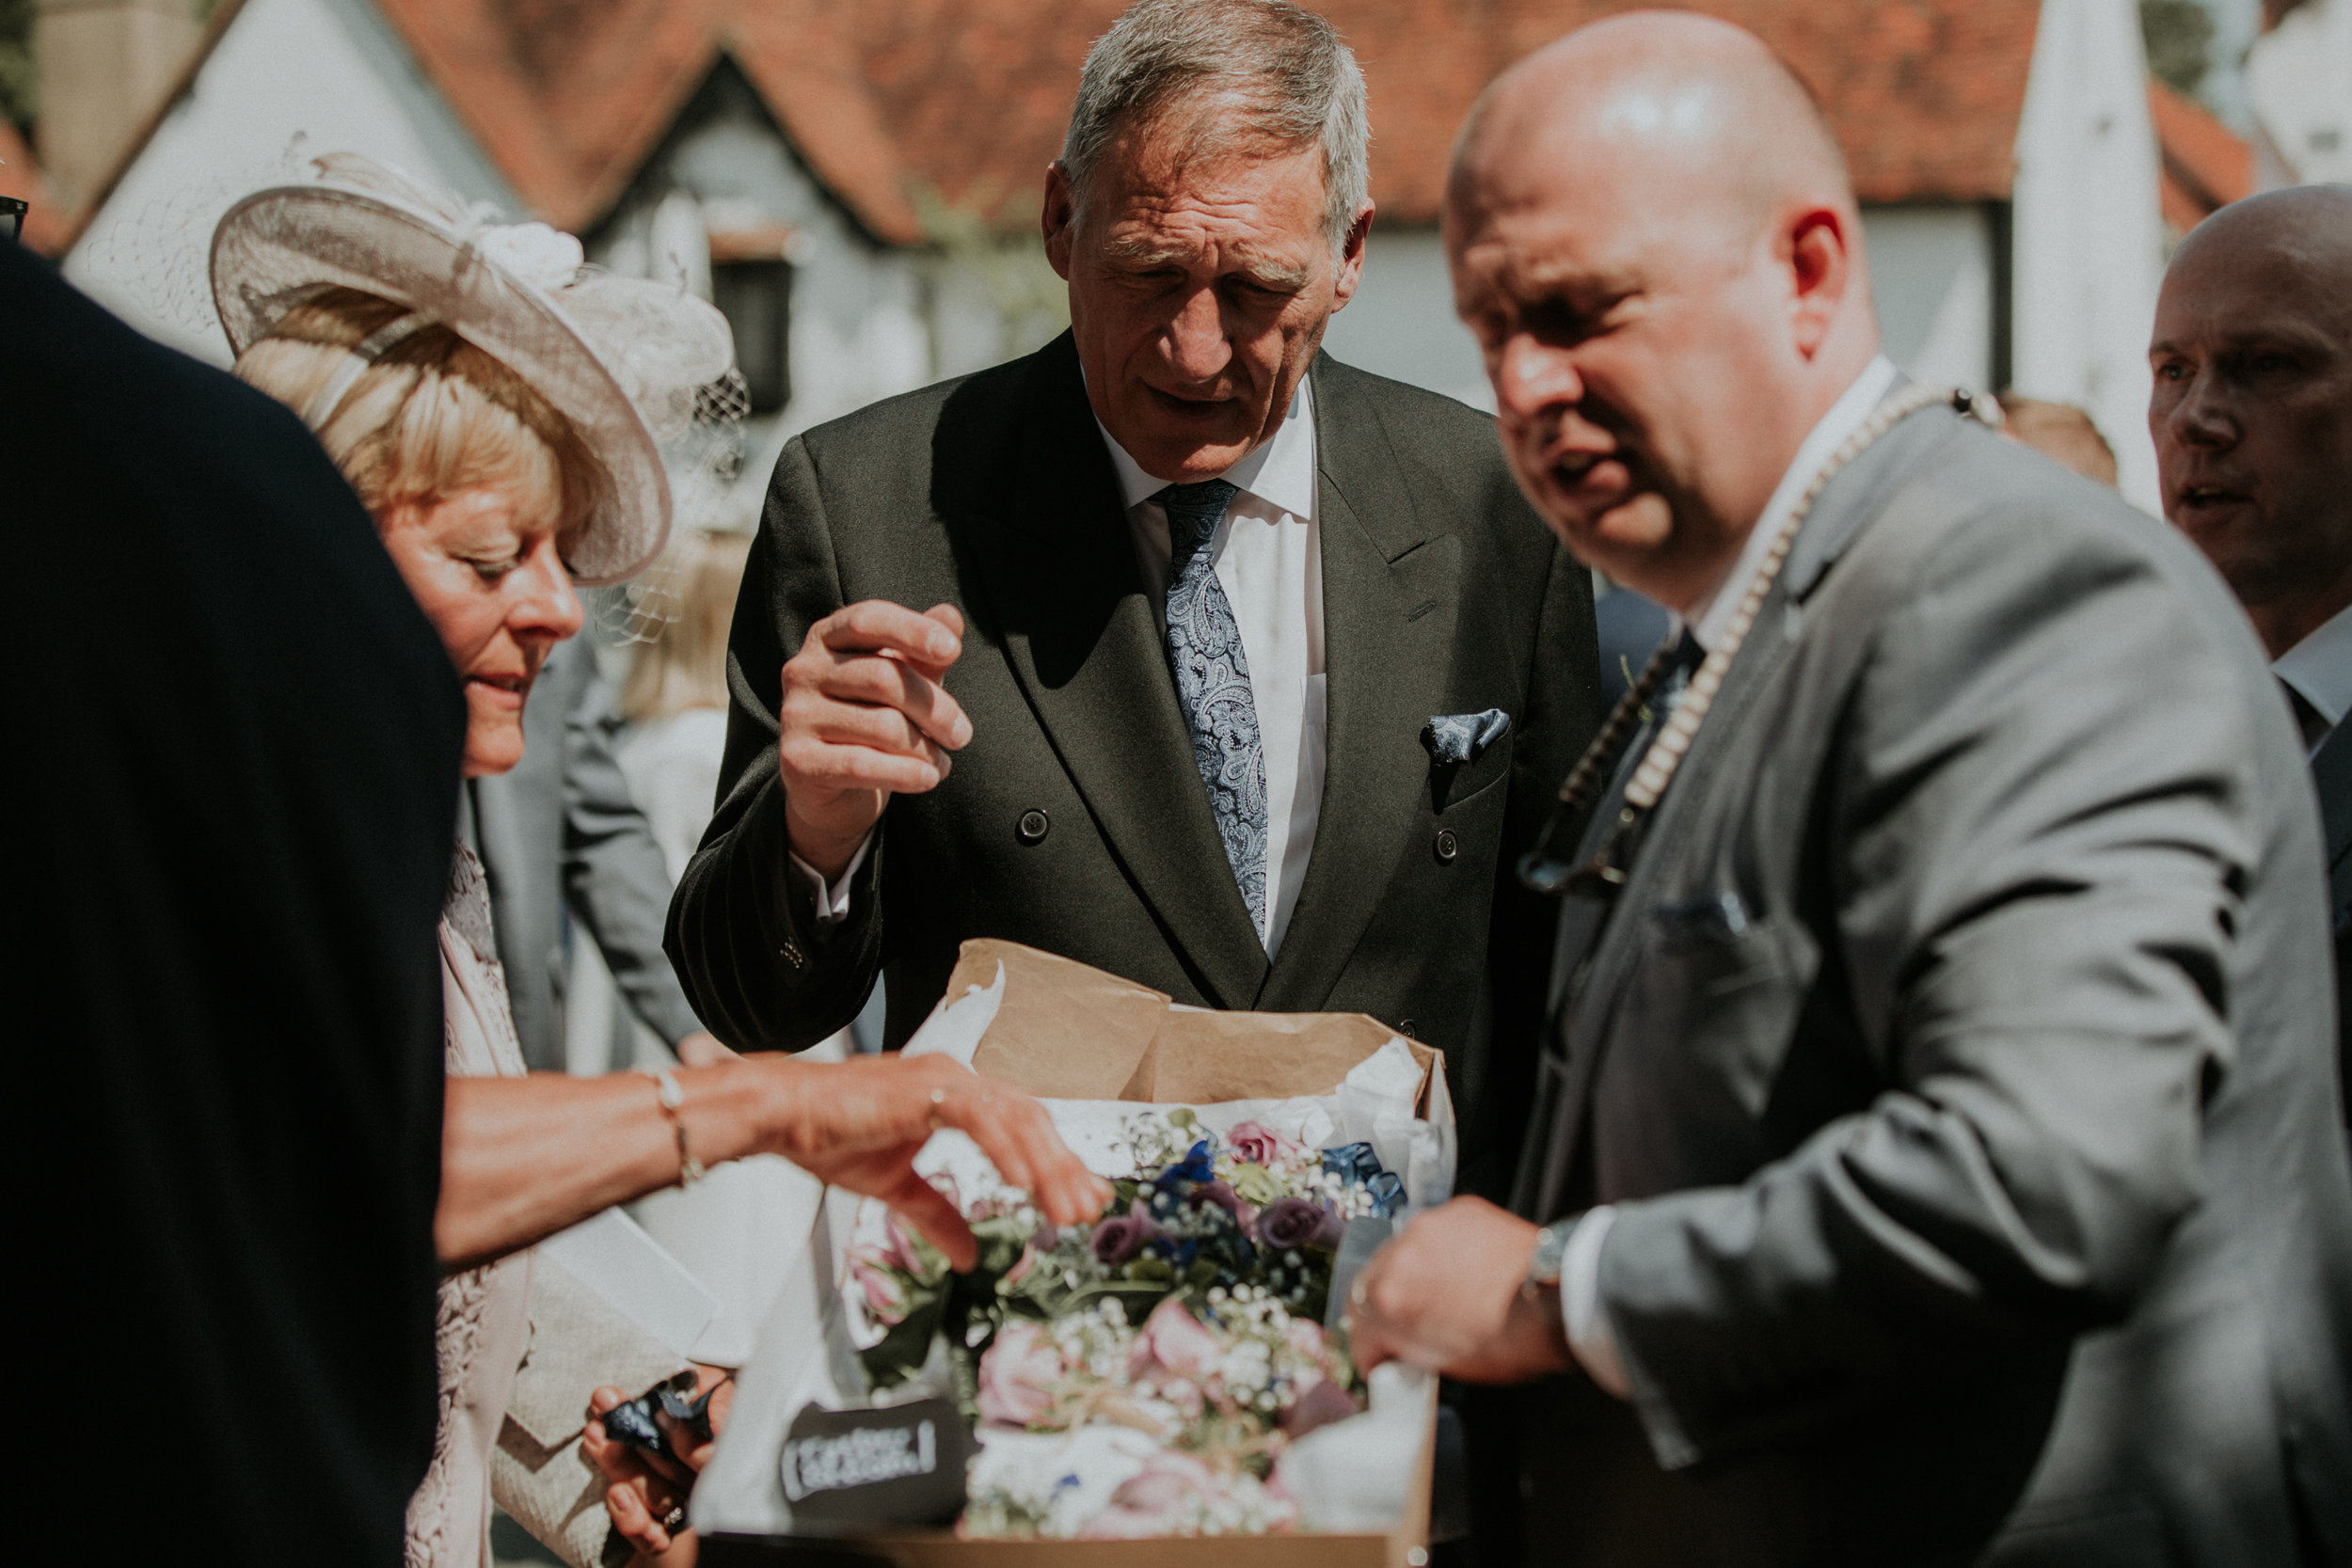 giving out buttonholes